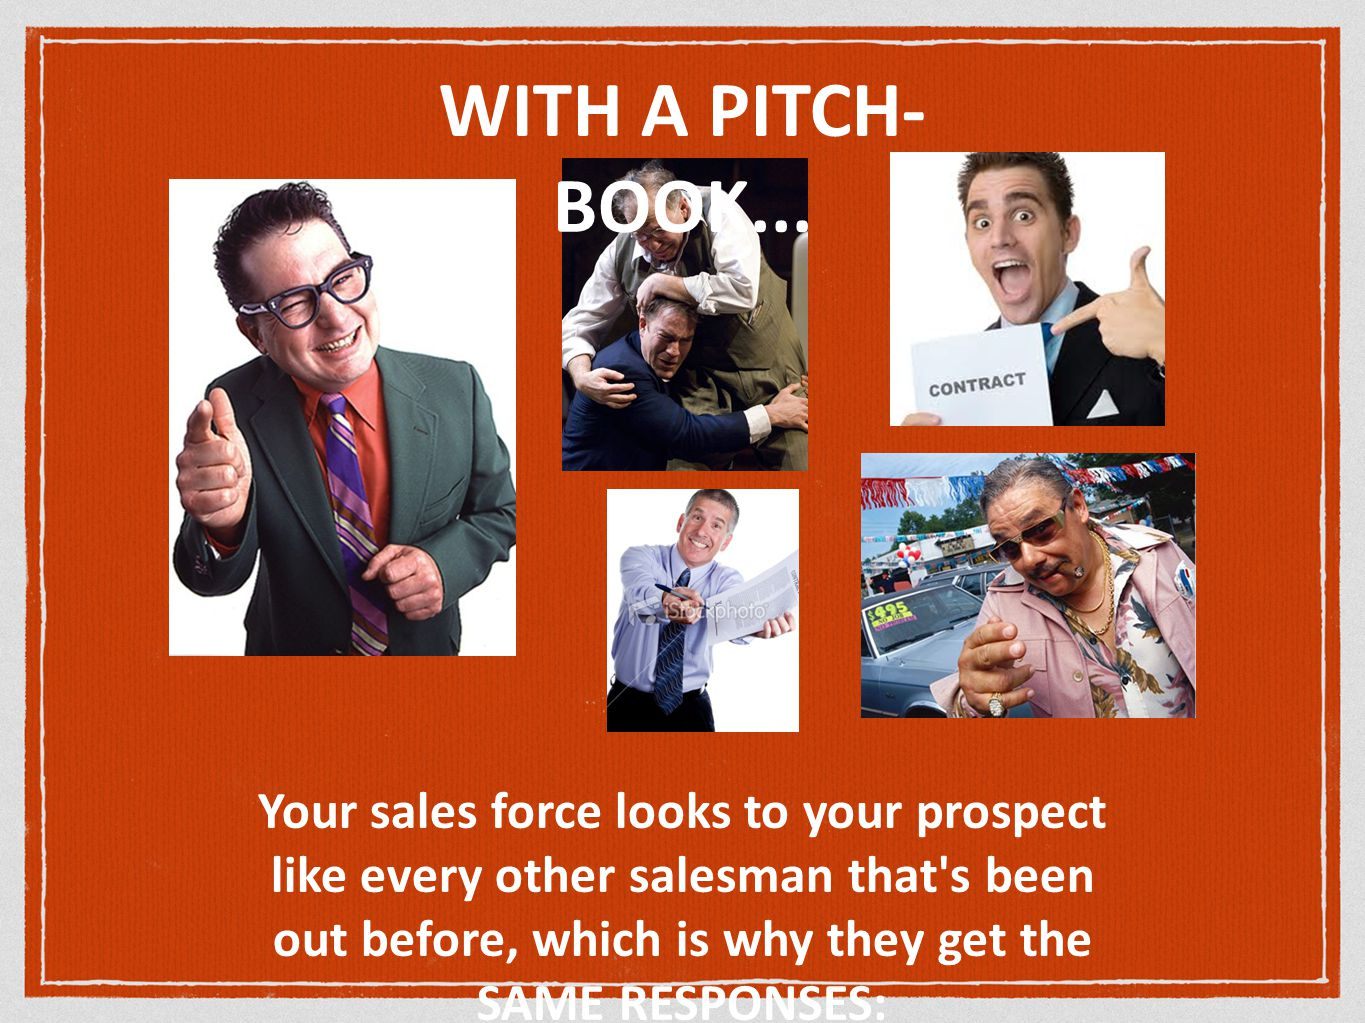 WITH A PITCH- BOOK...